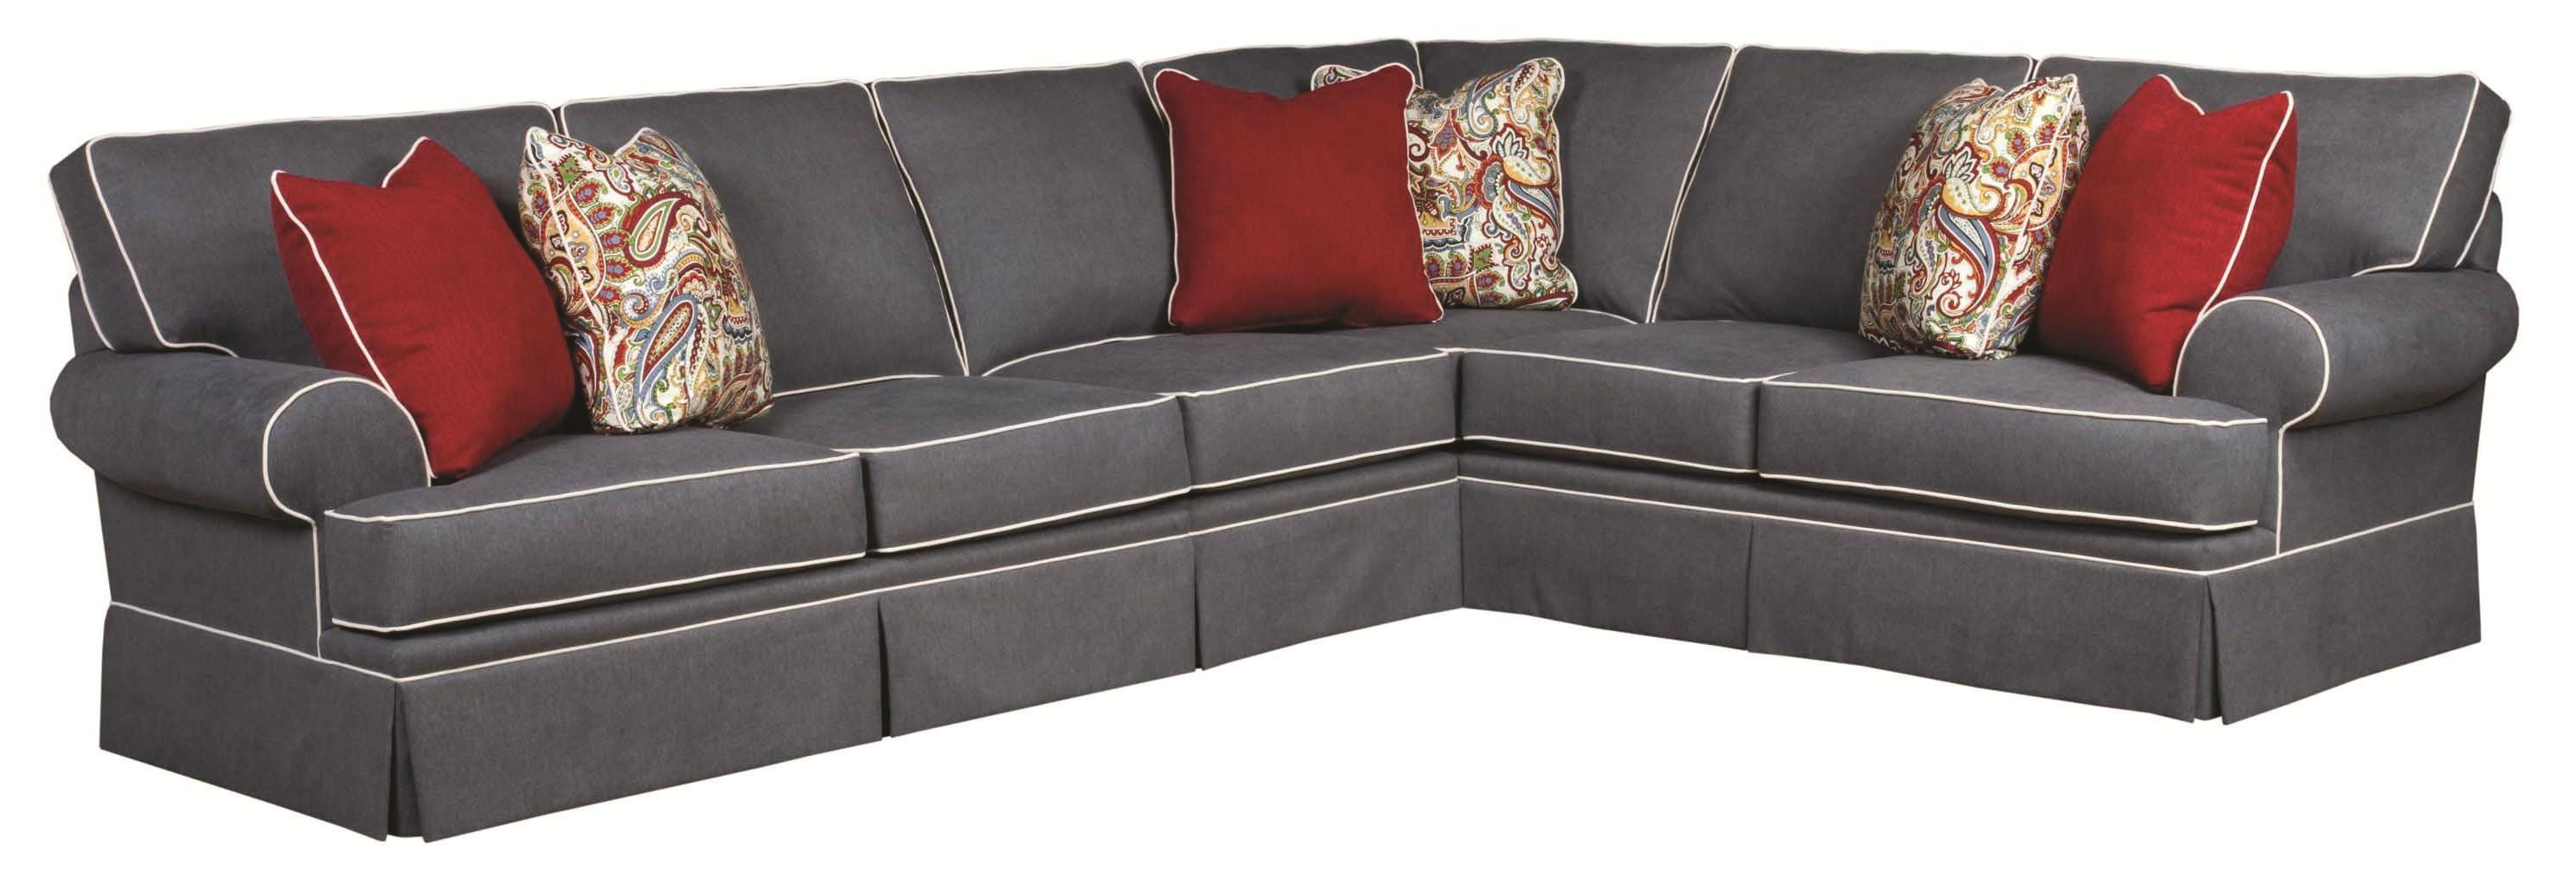 Broyhill Furniture Emily Traditional 3 Piece Sectional Sofa With Inside Broyhill Sectional Sofas (Image 1 of 15)